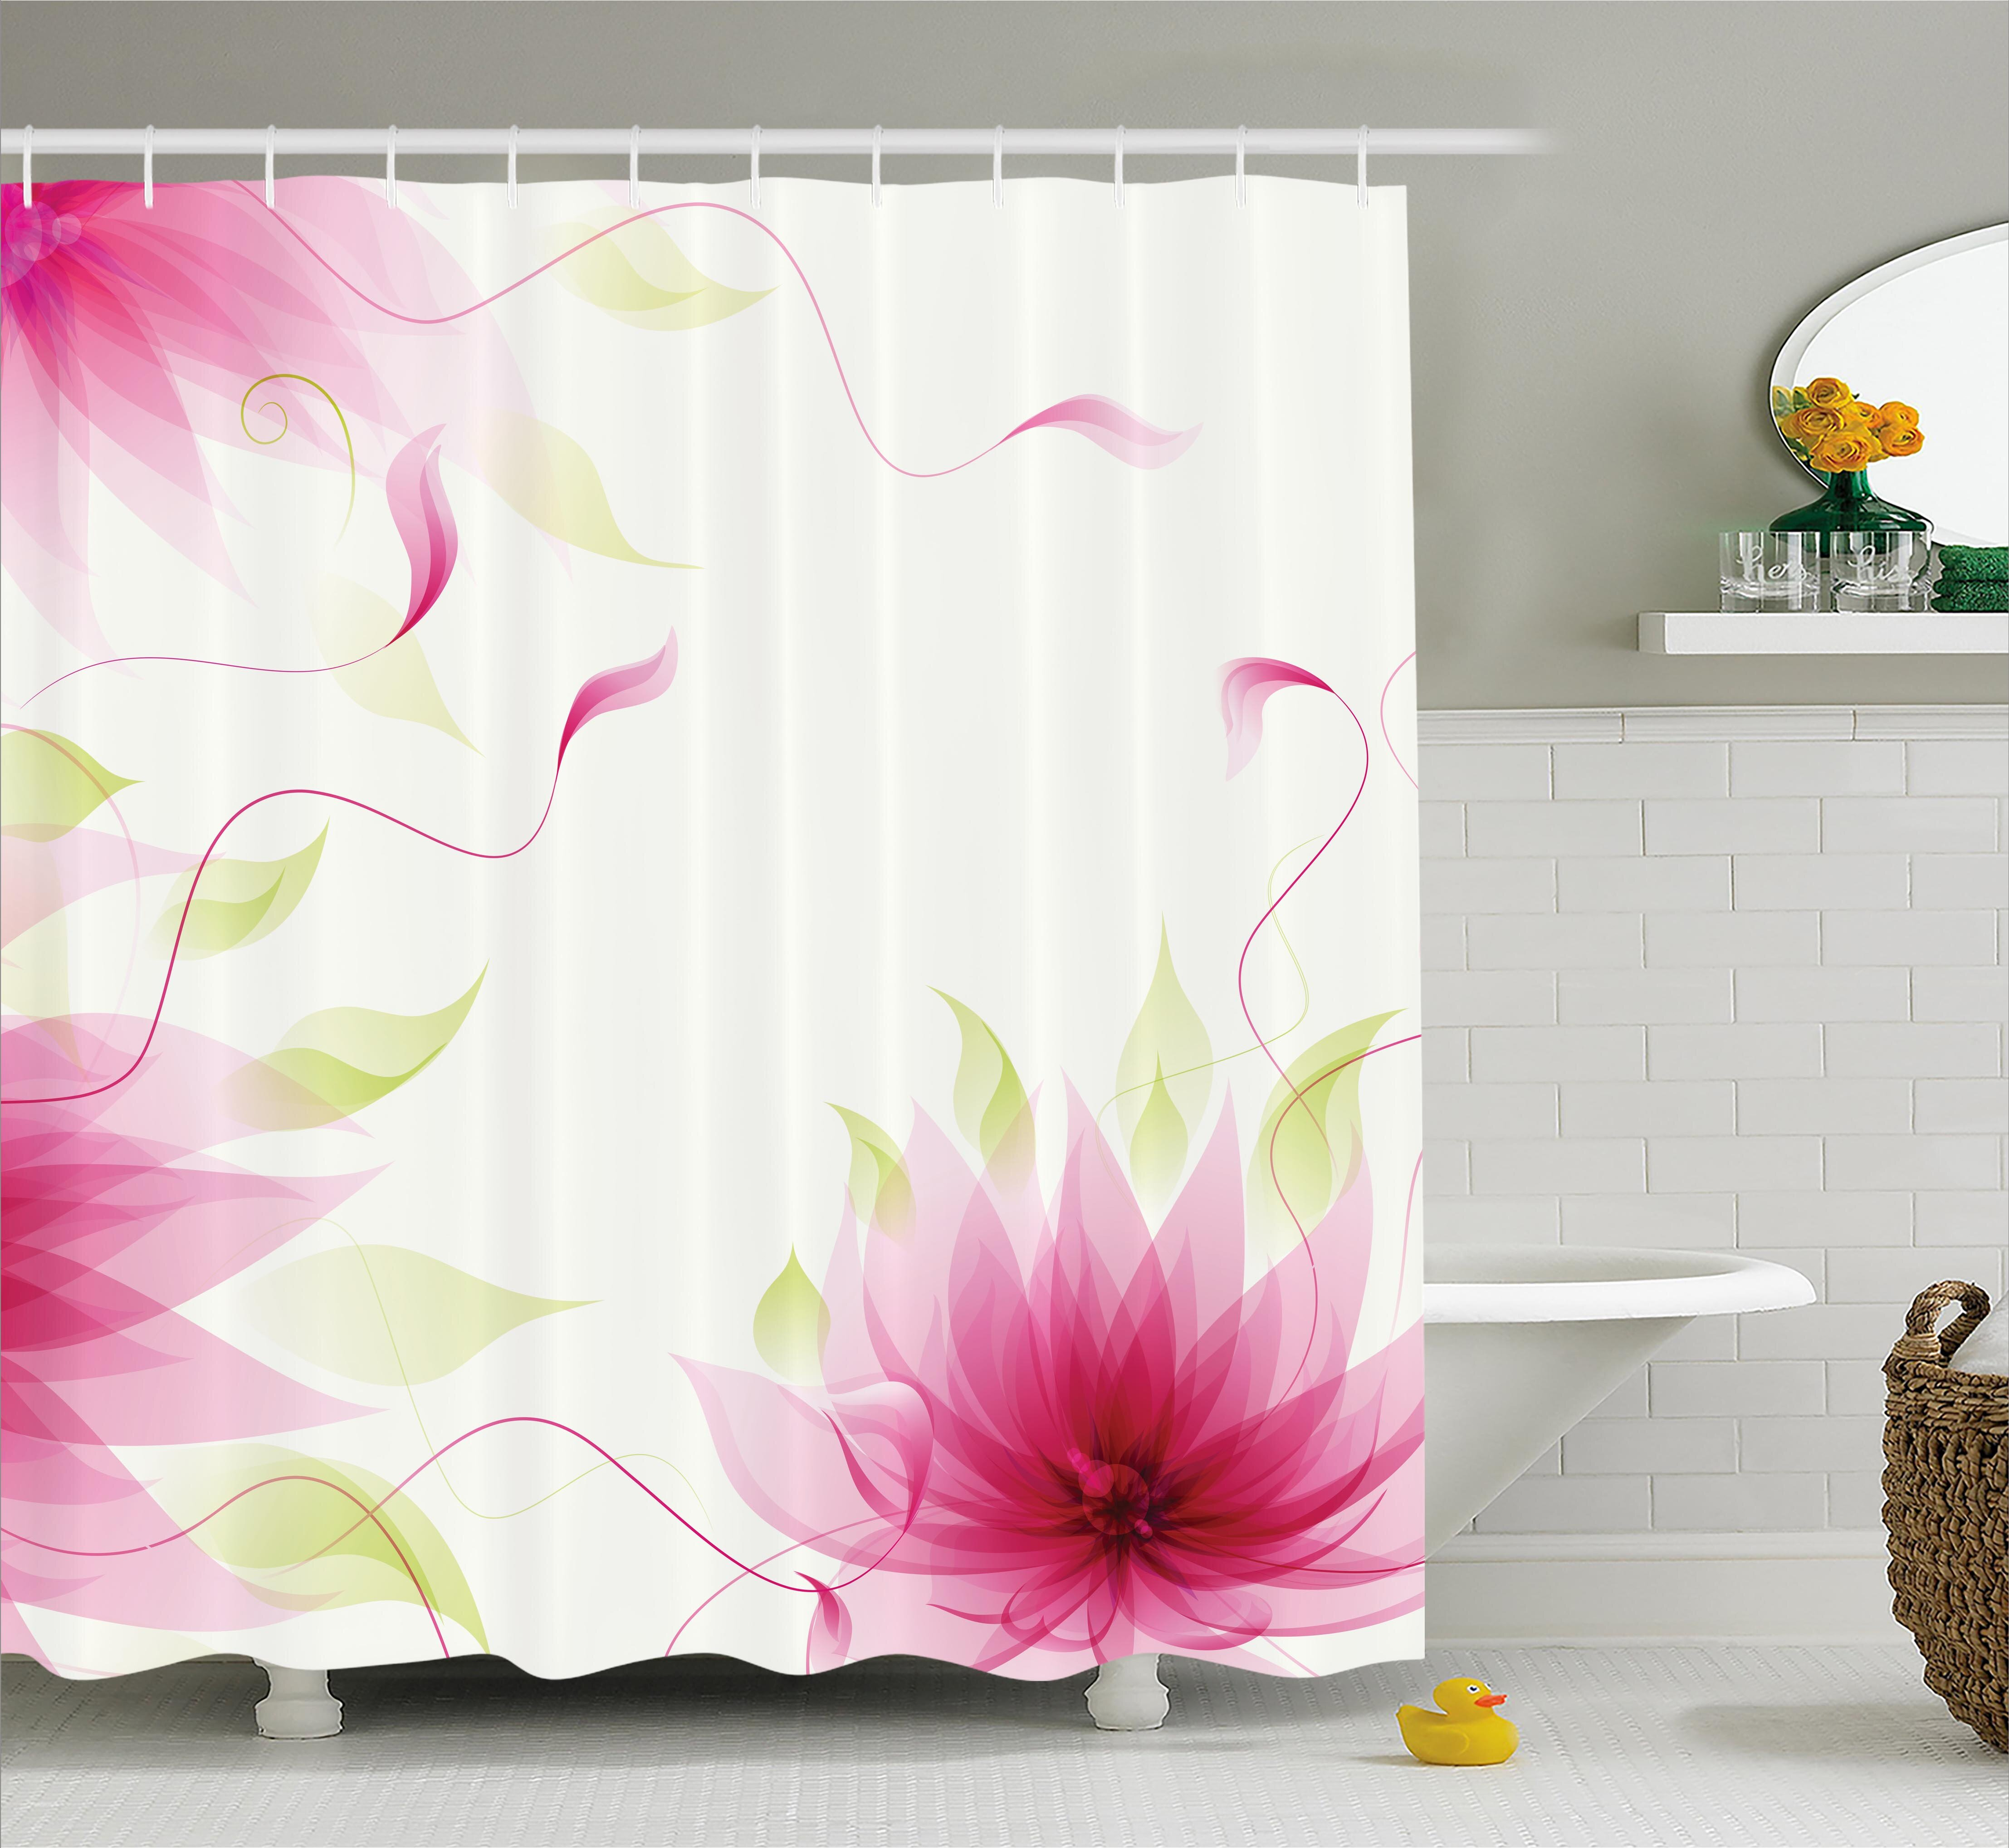 Ebern Designs Terry Ivy Flowers Leaves Abstract Natural Botanic Relaxing Lotus Design Print Shower Curtain